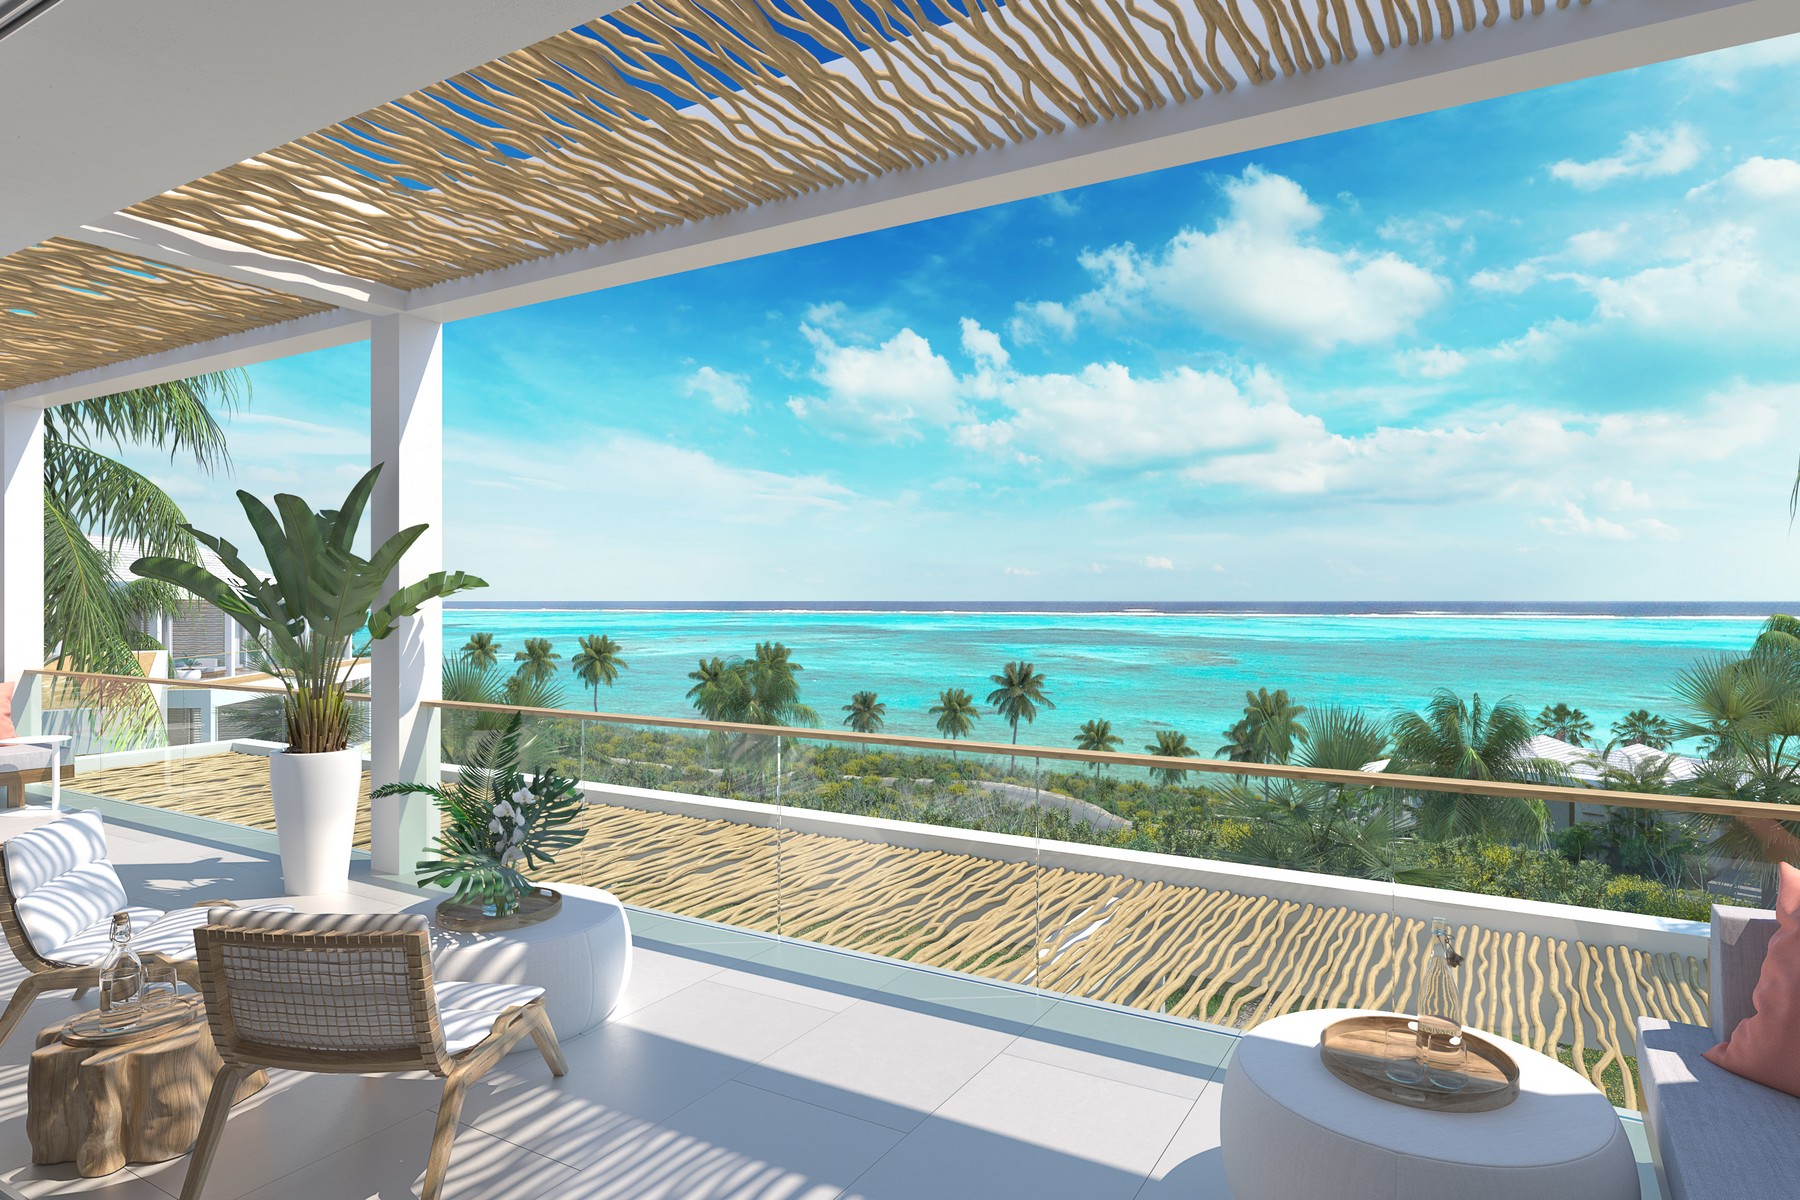 Additional photo for property listing at Rock House Two Bedroom Ridgetop Rock House Resort, International Drive Cheshire Hall, Providenciales TKCA 1ZZ Turks And Caicos Islands